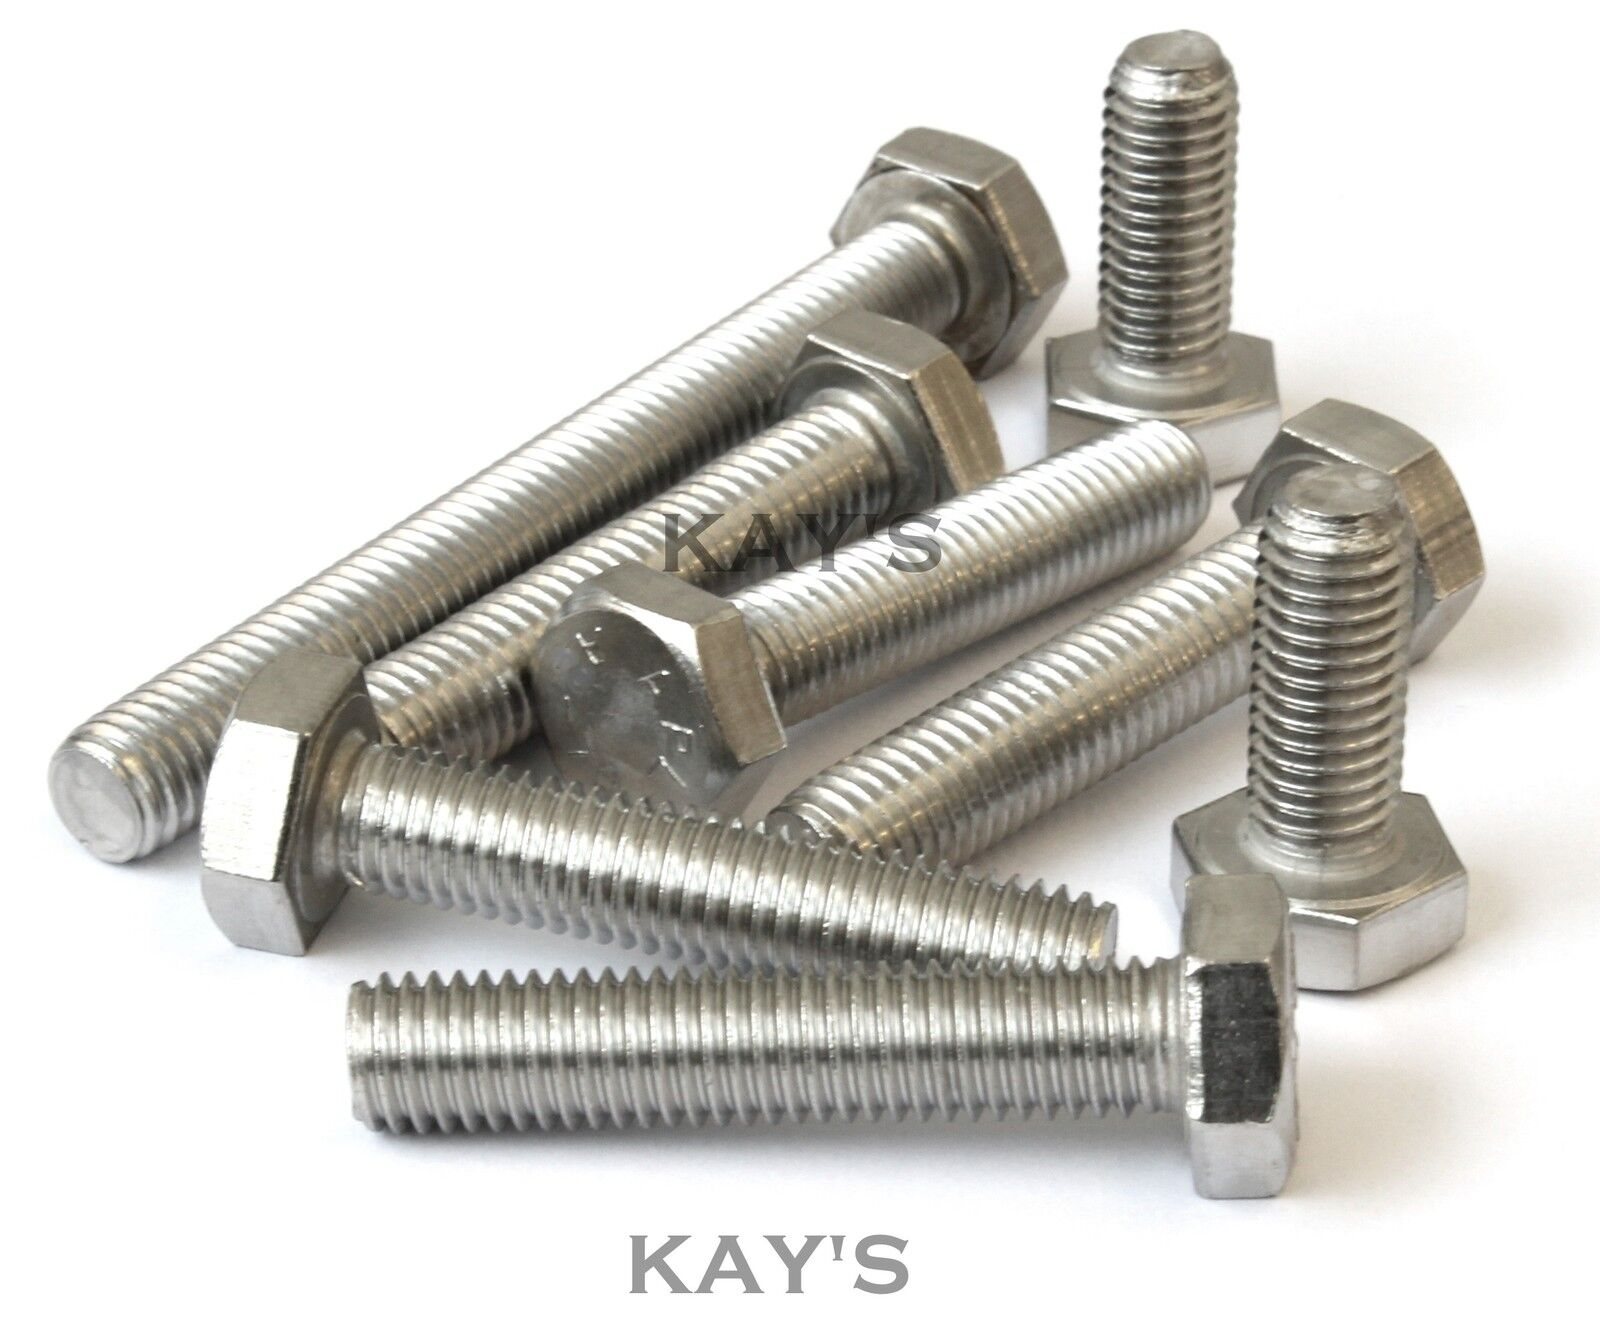 M12 HEXAGON SET SCREWS A4 MARINE GRADE STAINLESS STEEL FULLY THREADED BOLTS